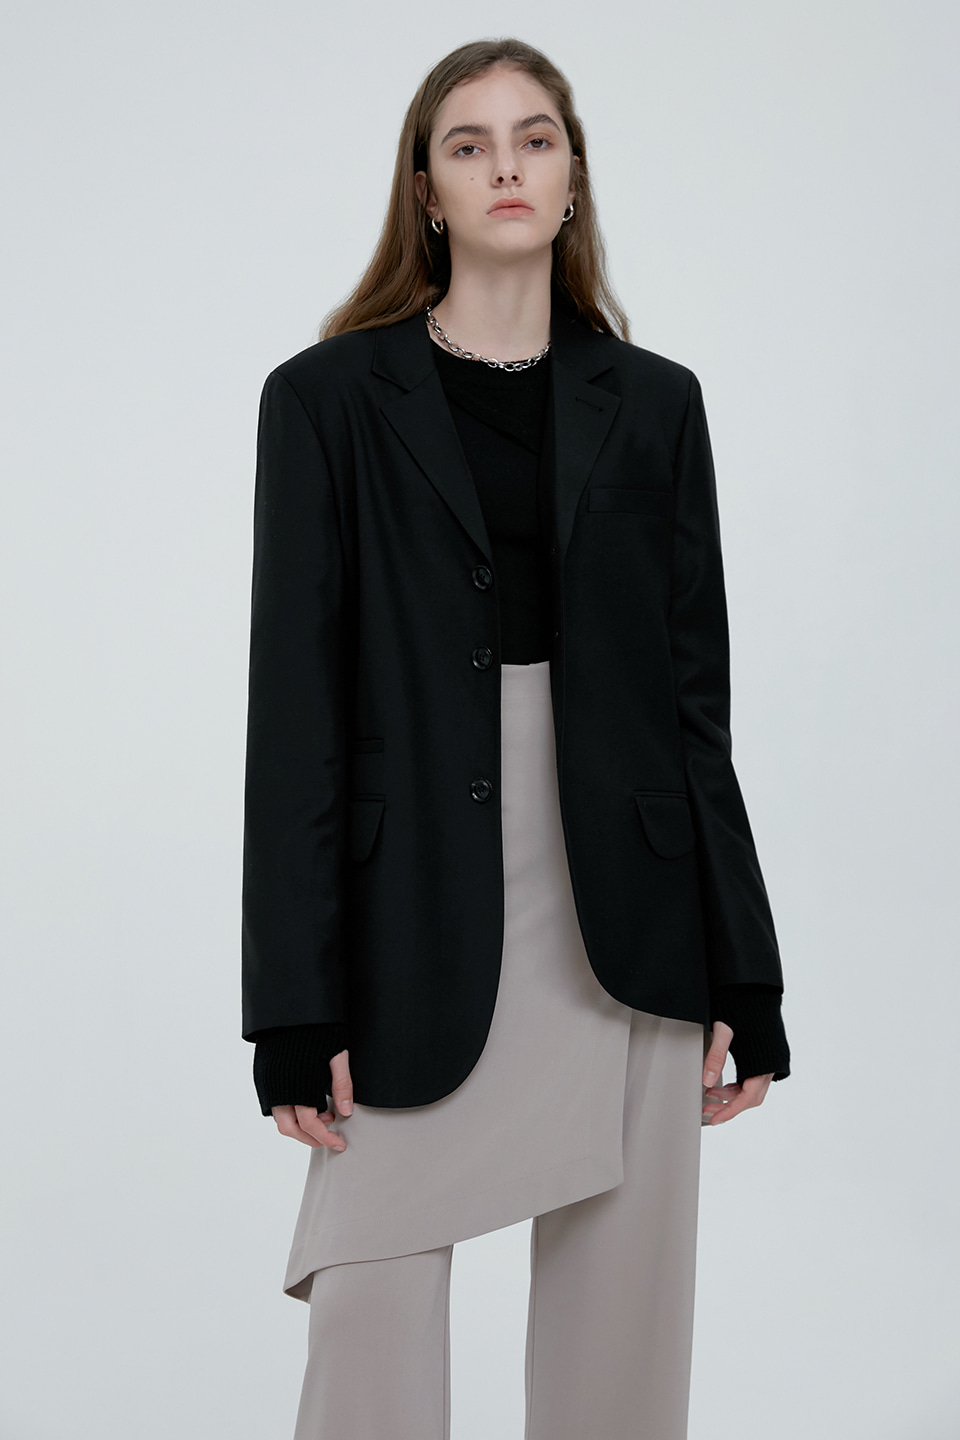 [UNISEX] SIGNATURE WOOL TAILORED BLAZER - BLACK